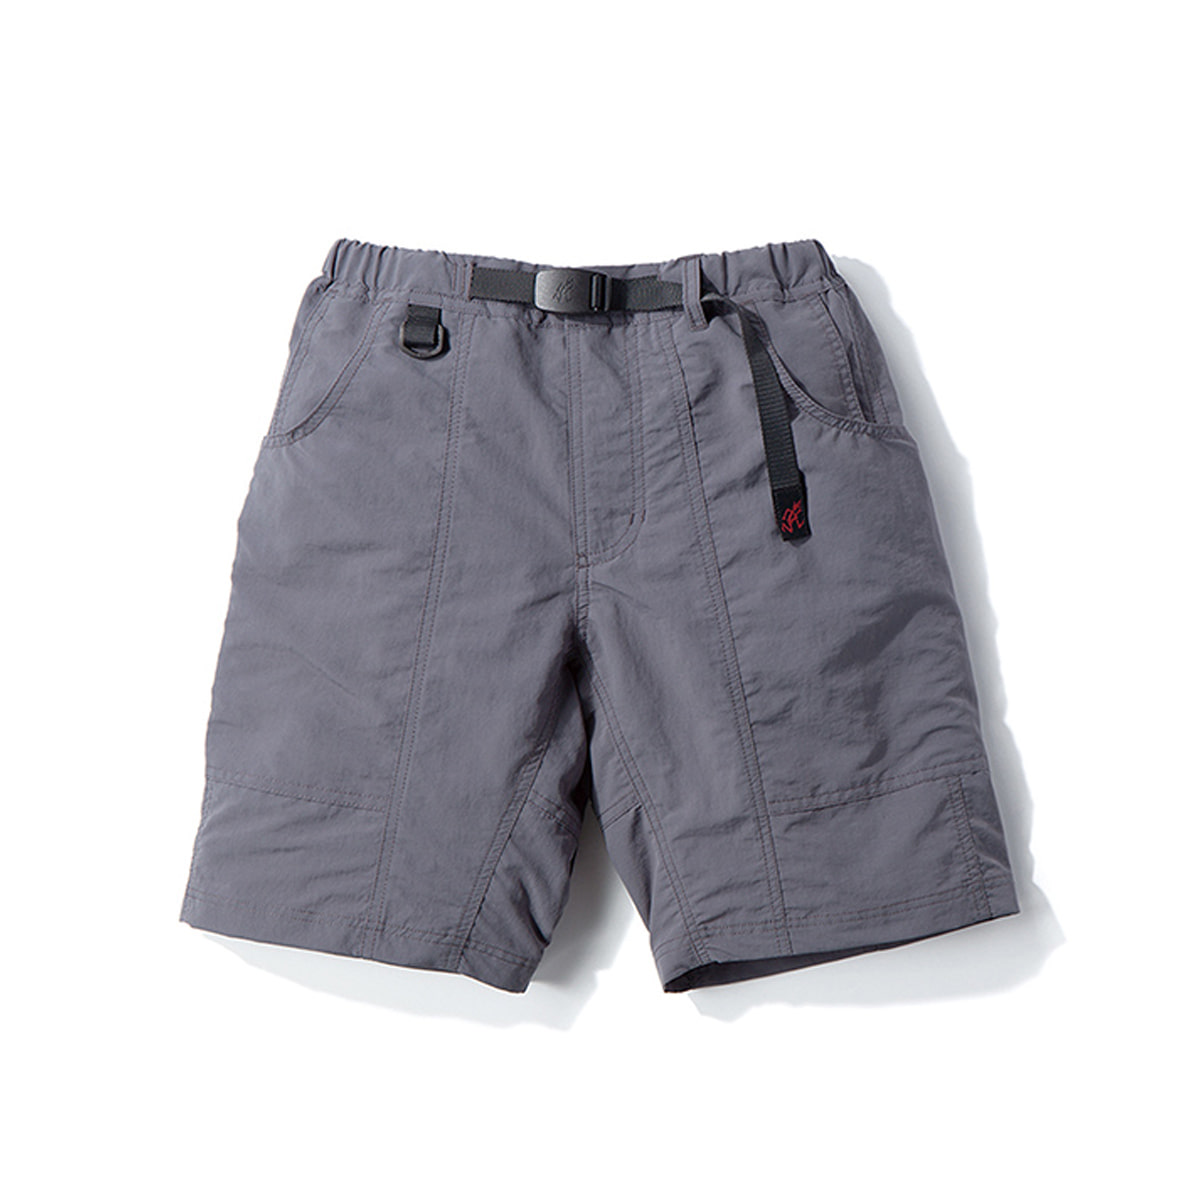 [GRAMICCI] SHELL GEAR SHORTS 'CHARCOAL'